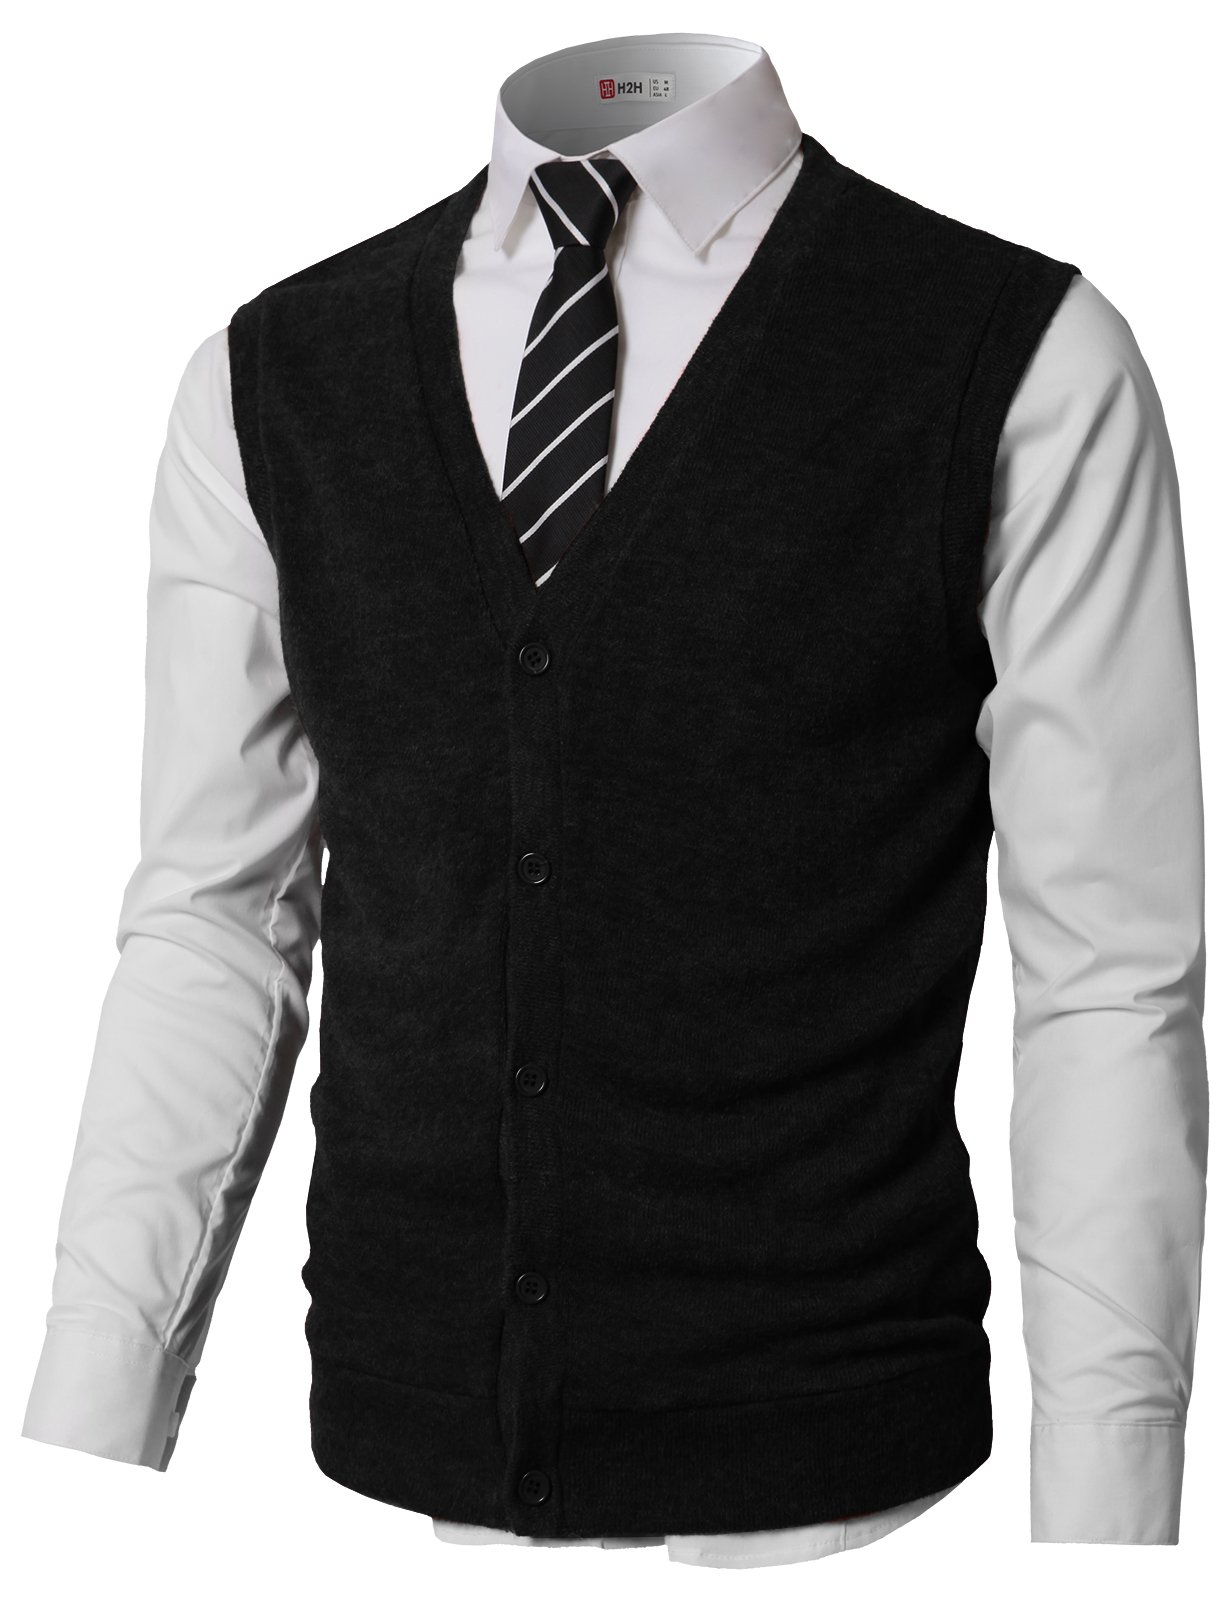 71698e1617 Galleon - H2H Men s V-Neck Argyle Pattern Button Down Sweater Vest Cardigan  Black US 3XL Asia 4XL (CMOV046)